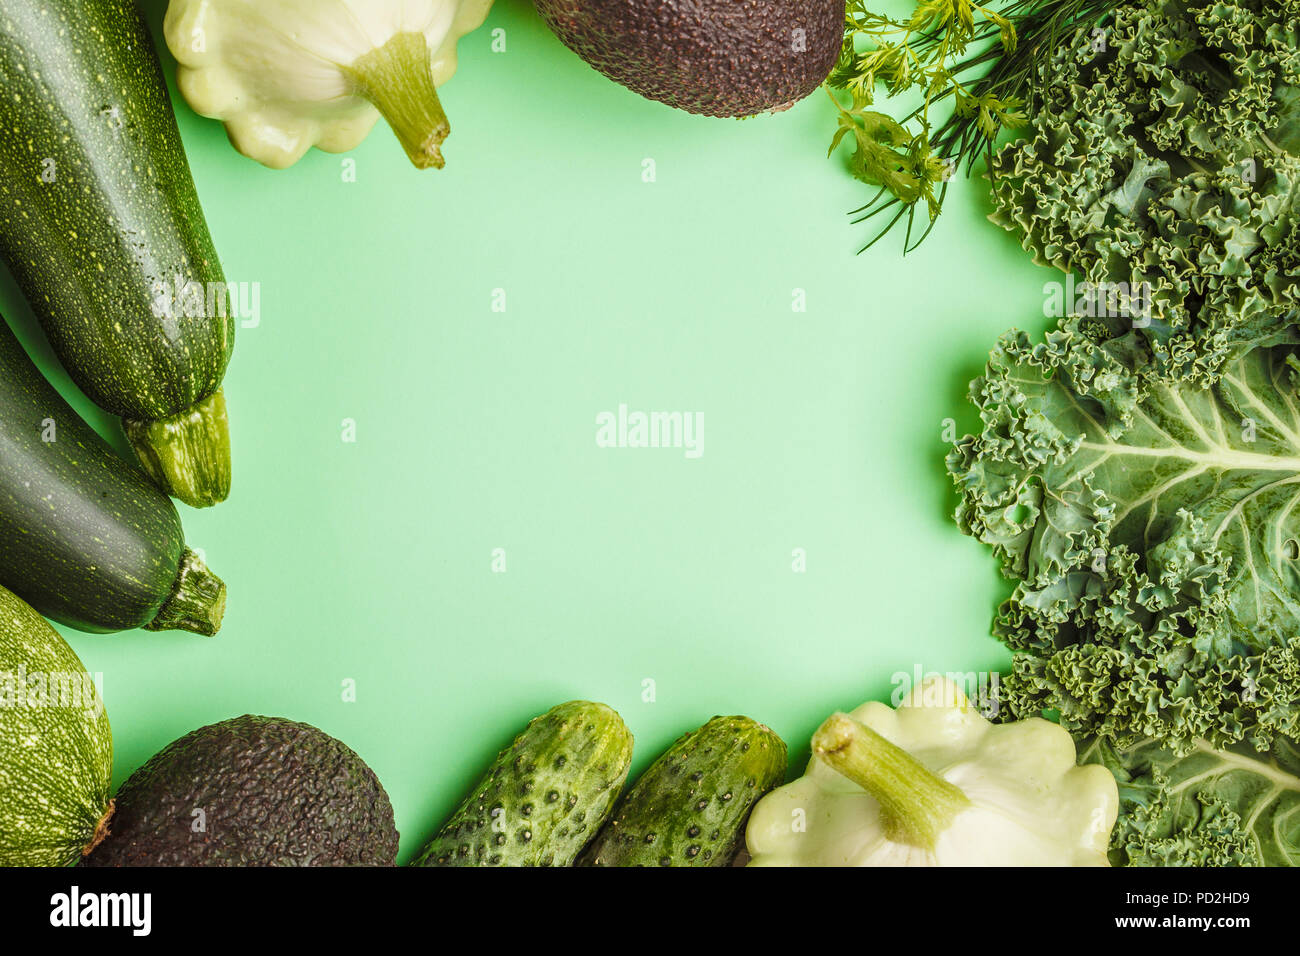 Assortment of green vegetables on green background, top view. Fruits and vegetables containing chlorophyll. - Stock Image